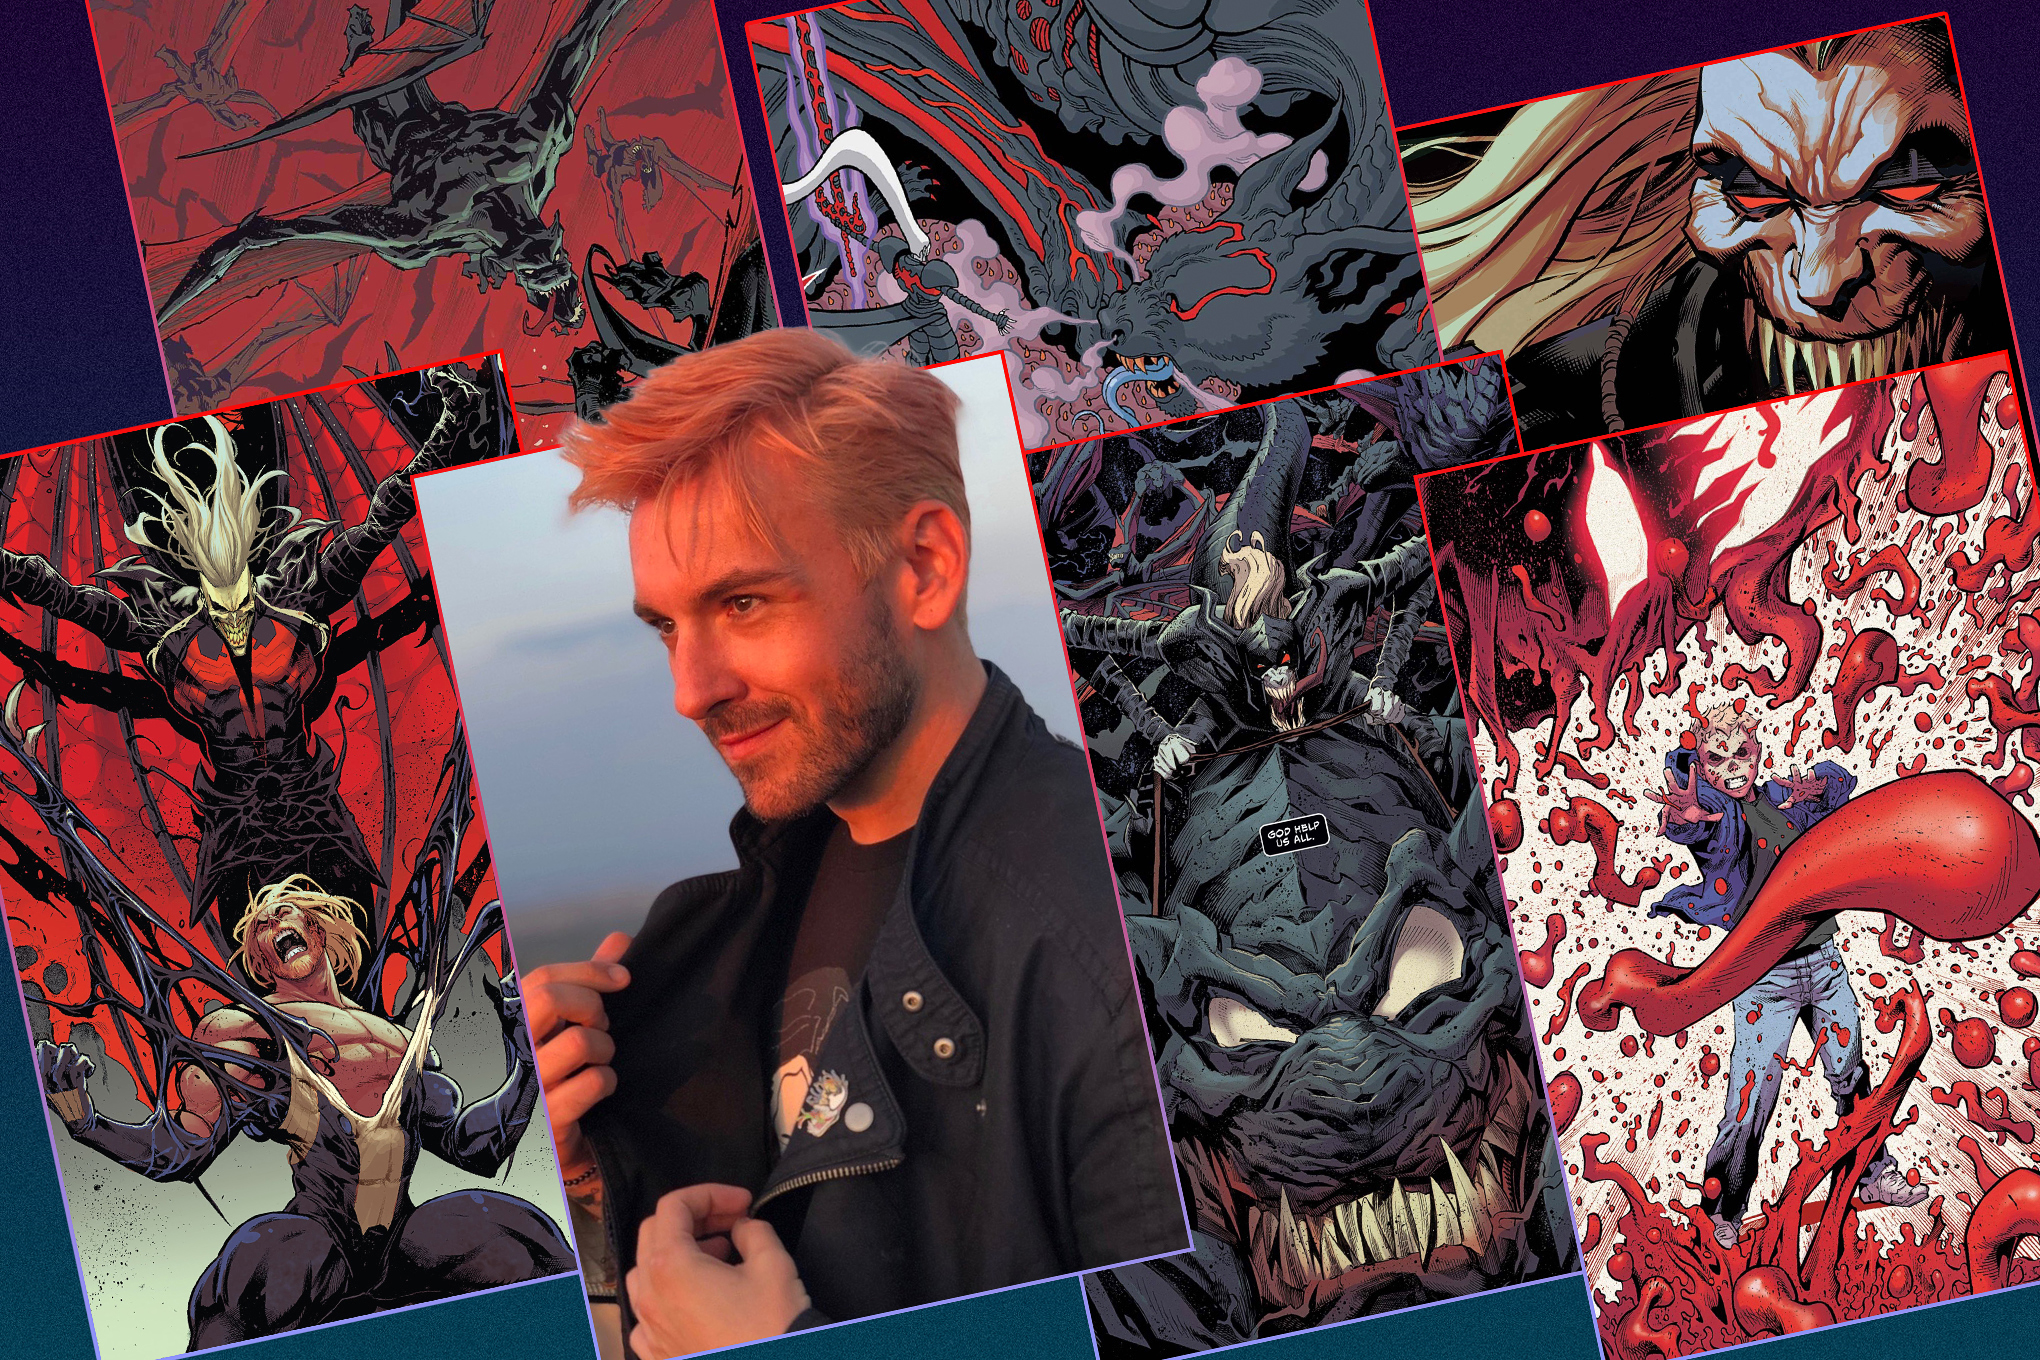 A grid featuring comic book artwork and portrait of the writer Donny Cates